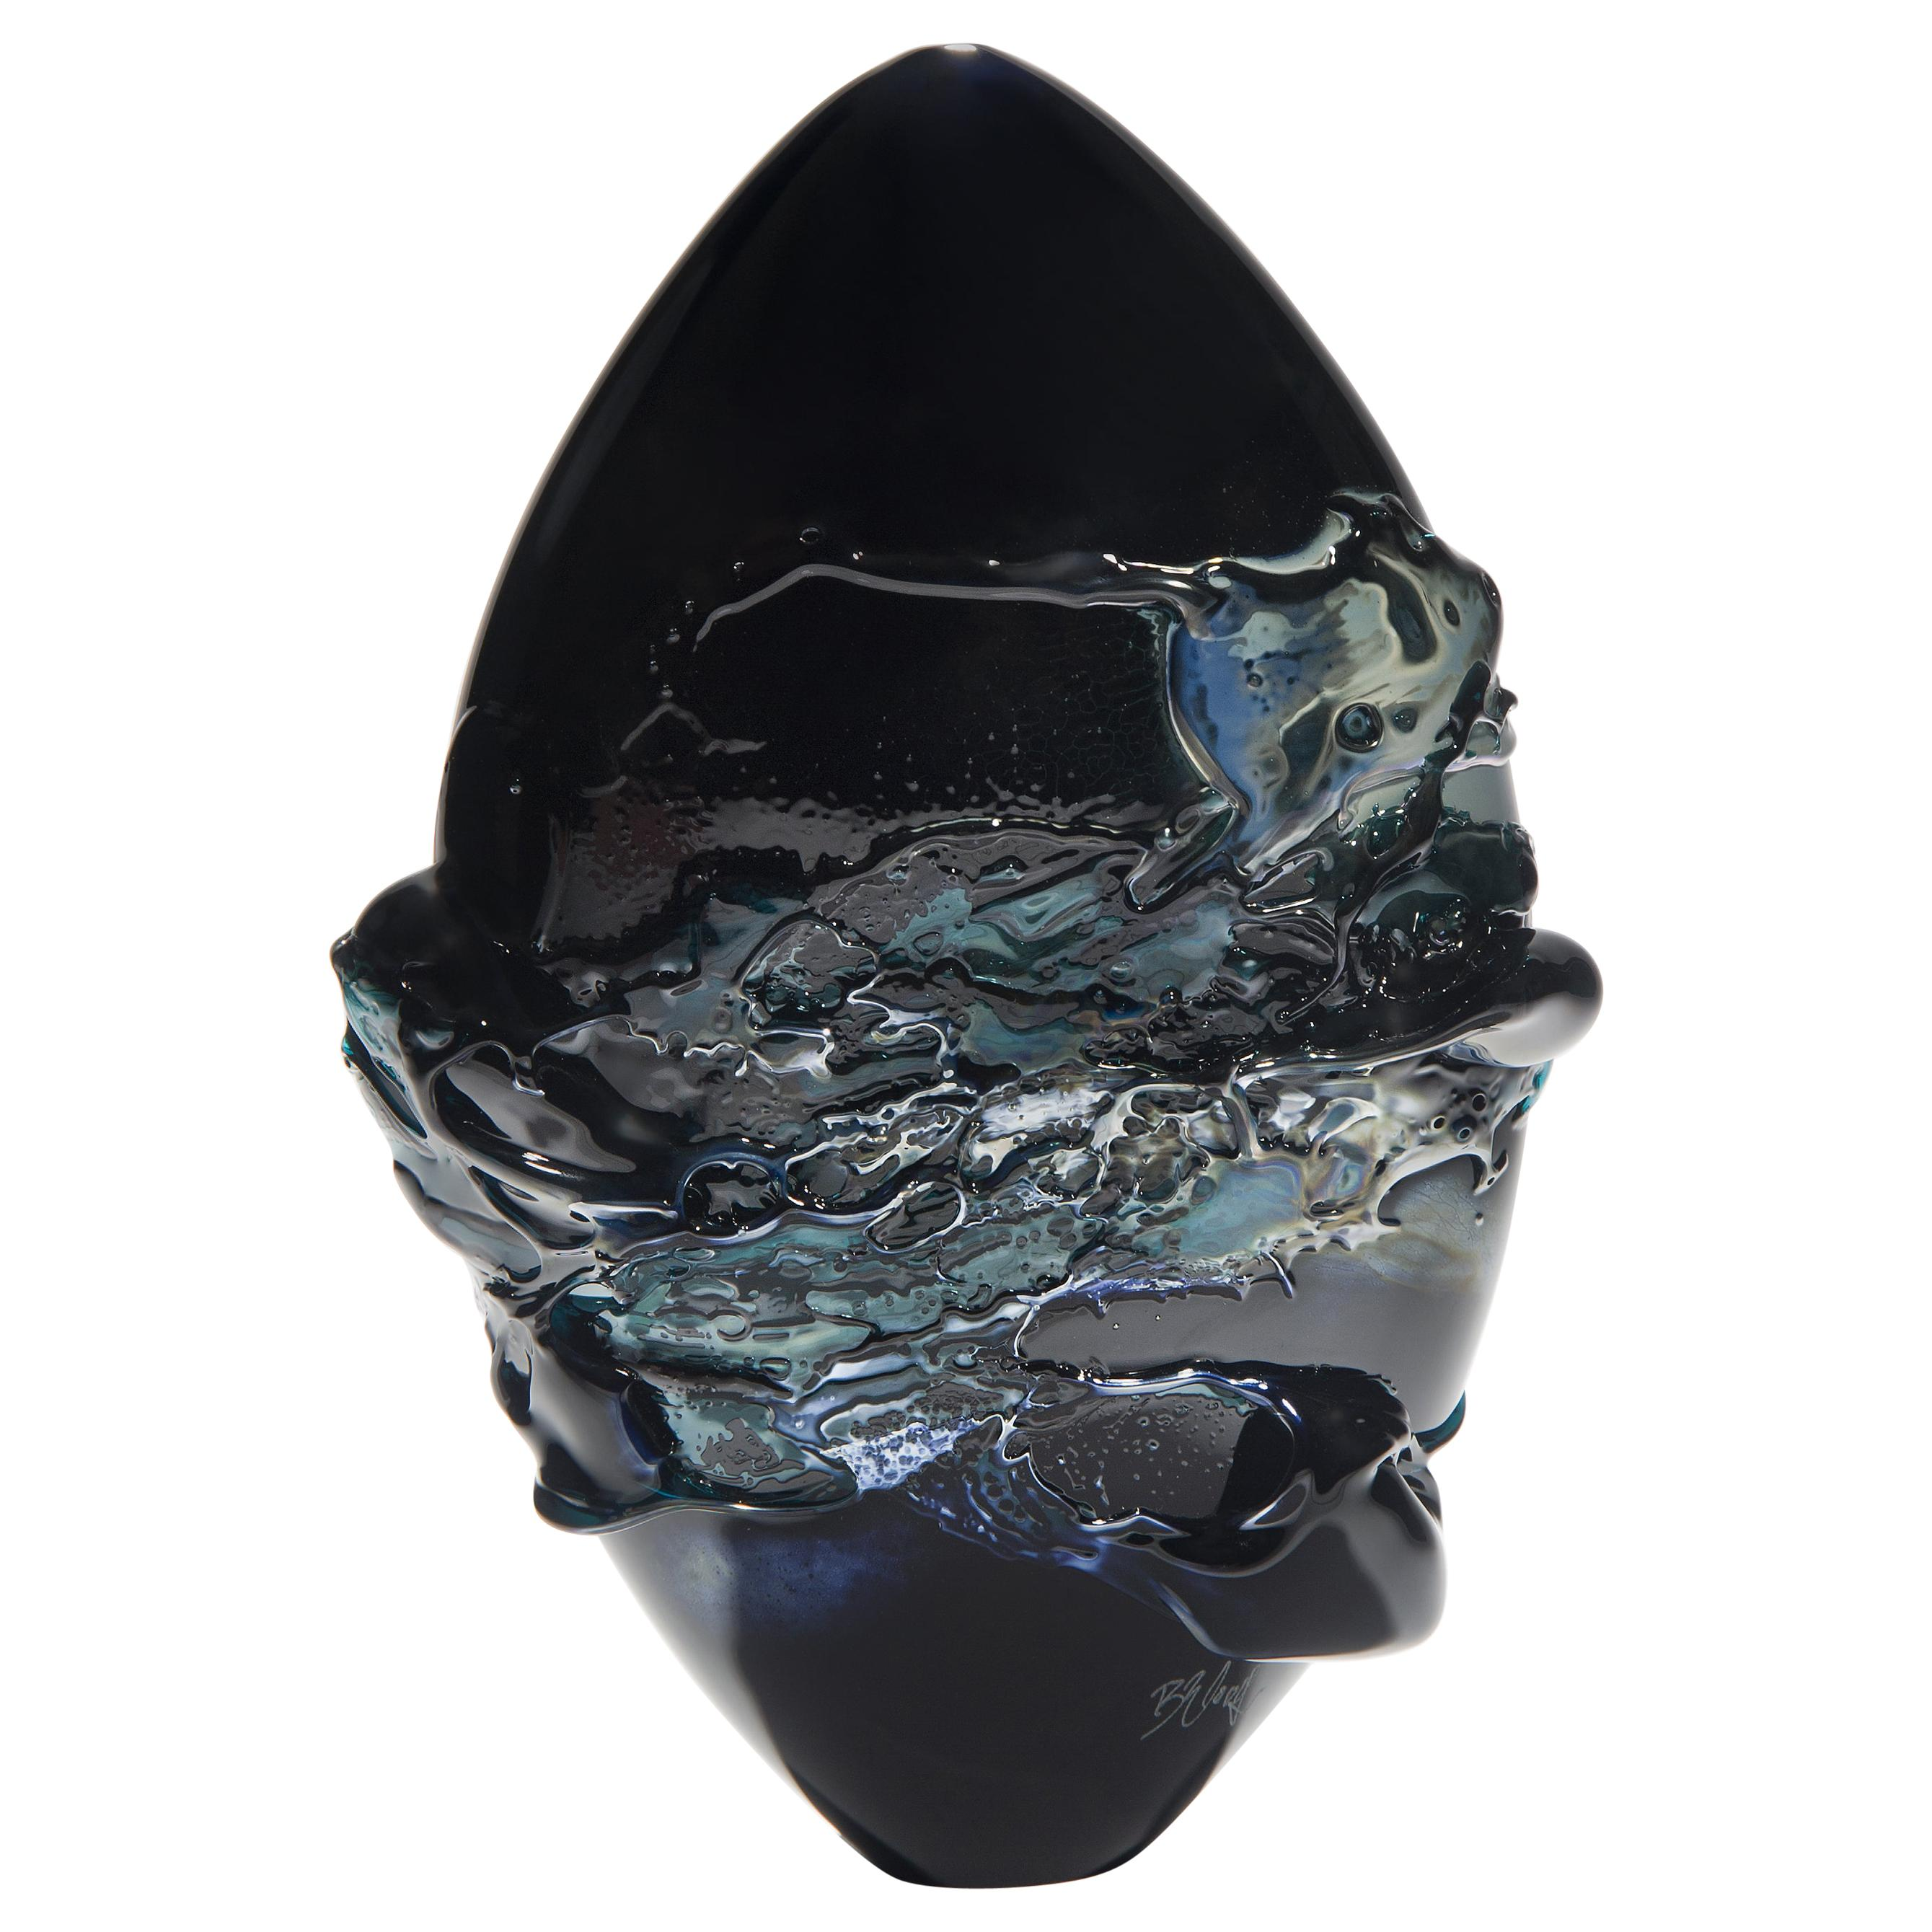 Black Sea, a Unique Black, Blue and Metallic Sheen Glass Vase by Bethany Wood